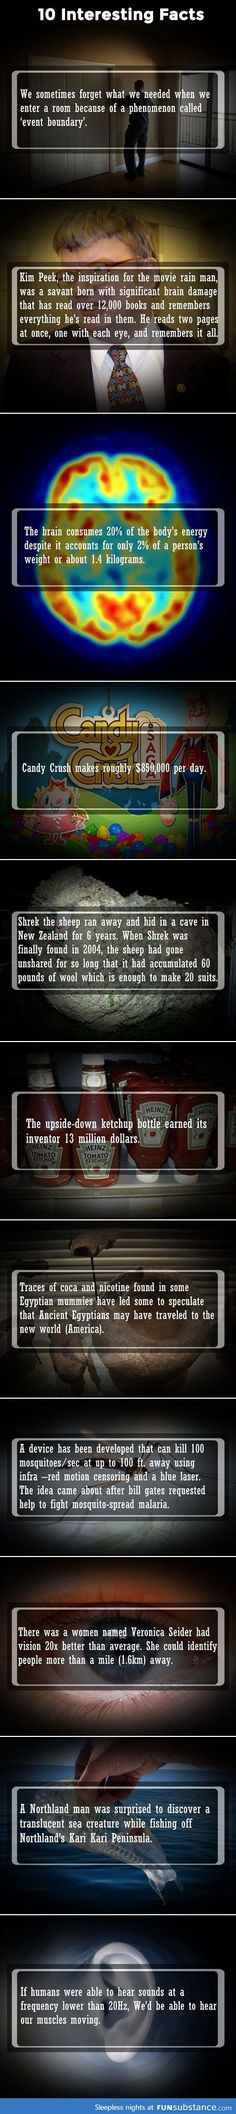 Ten Interesting Facts To Impress Your Friends...